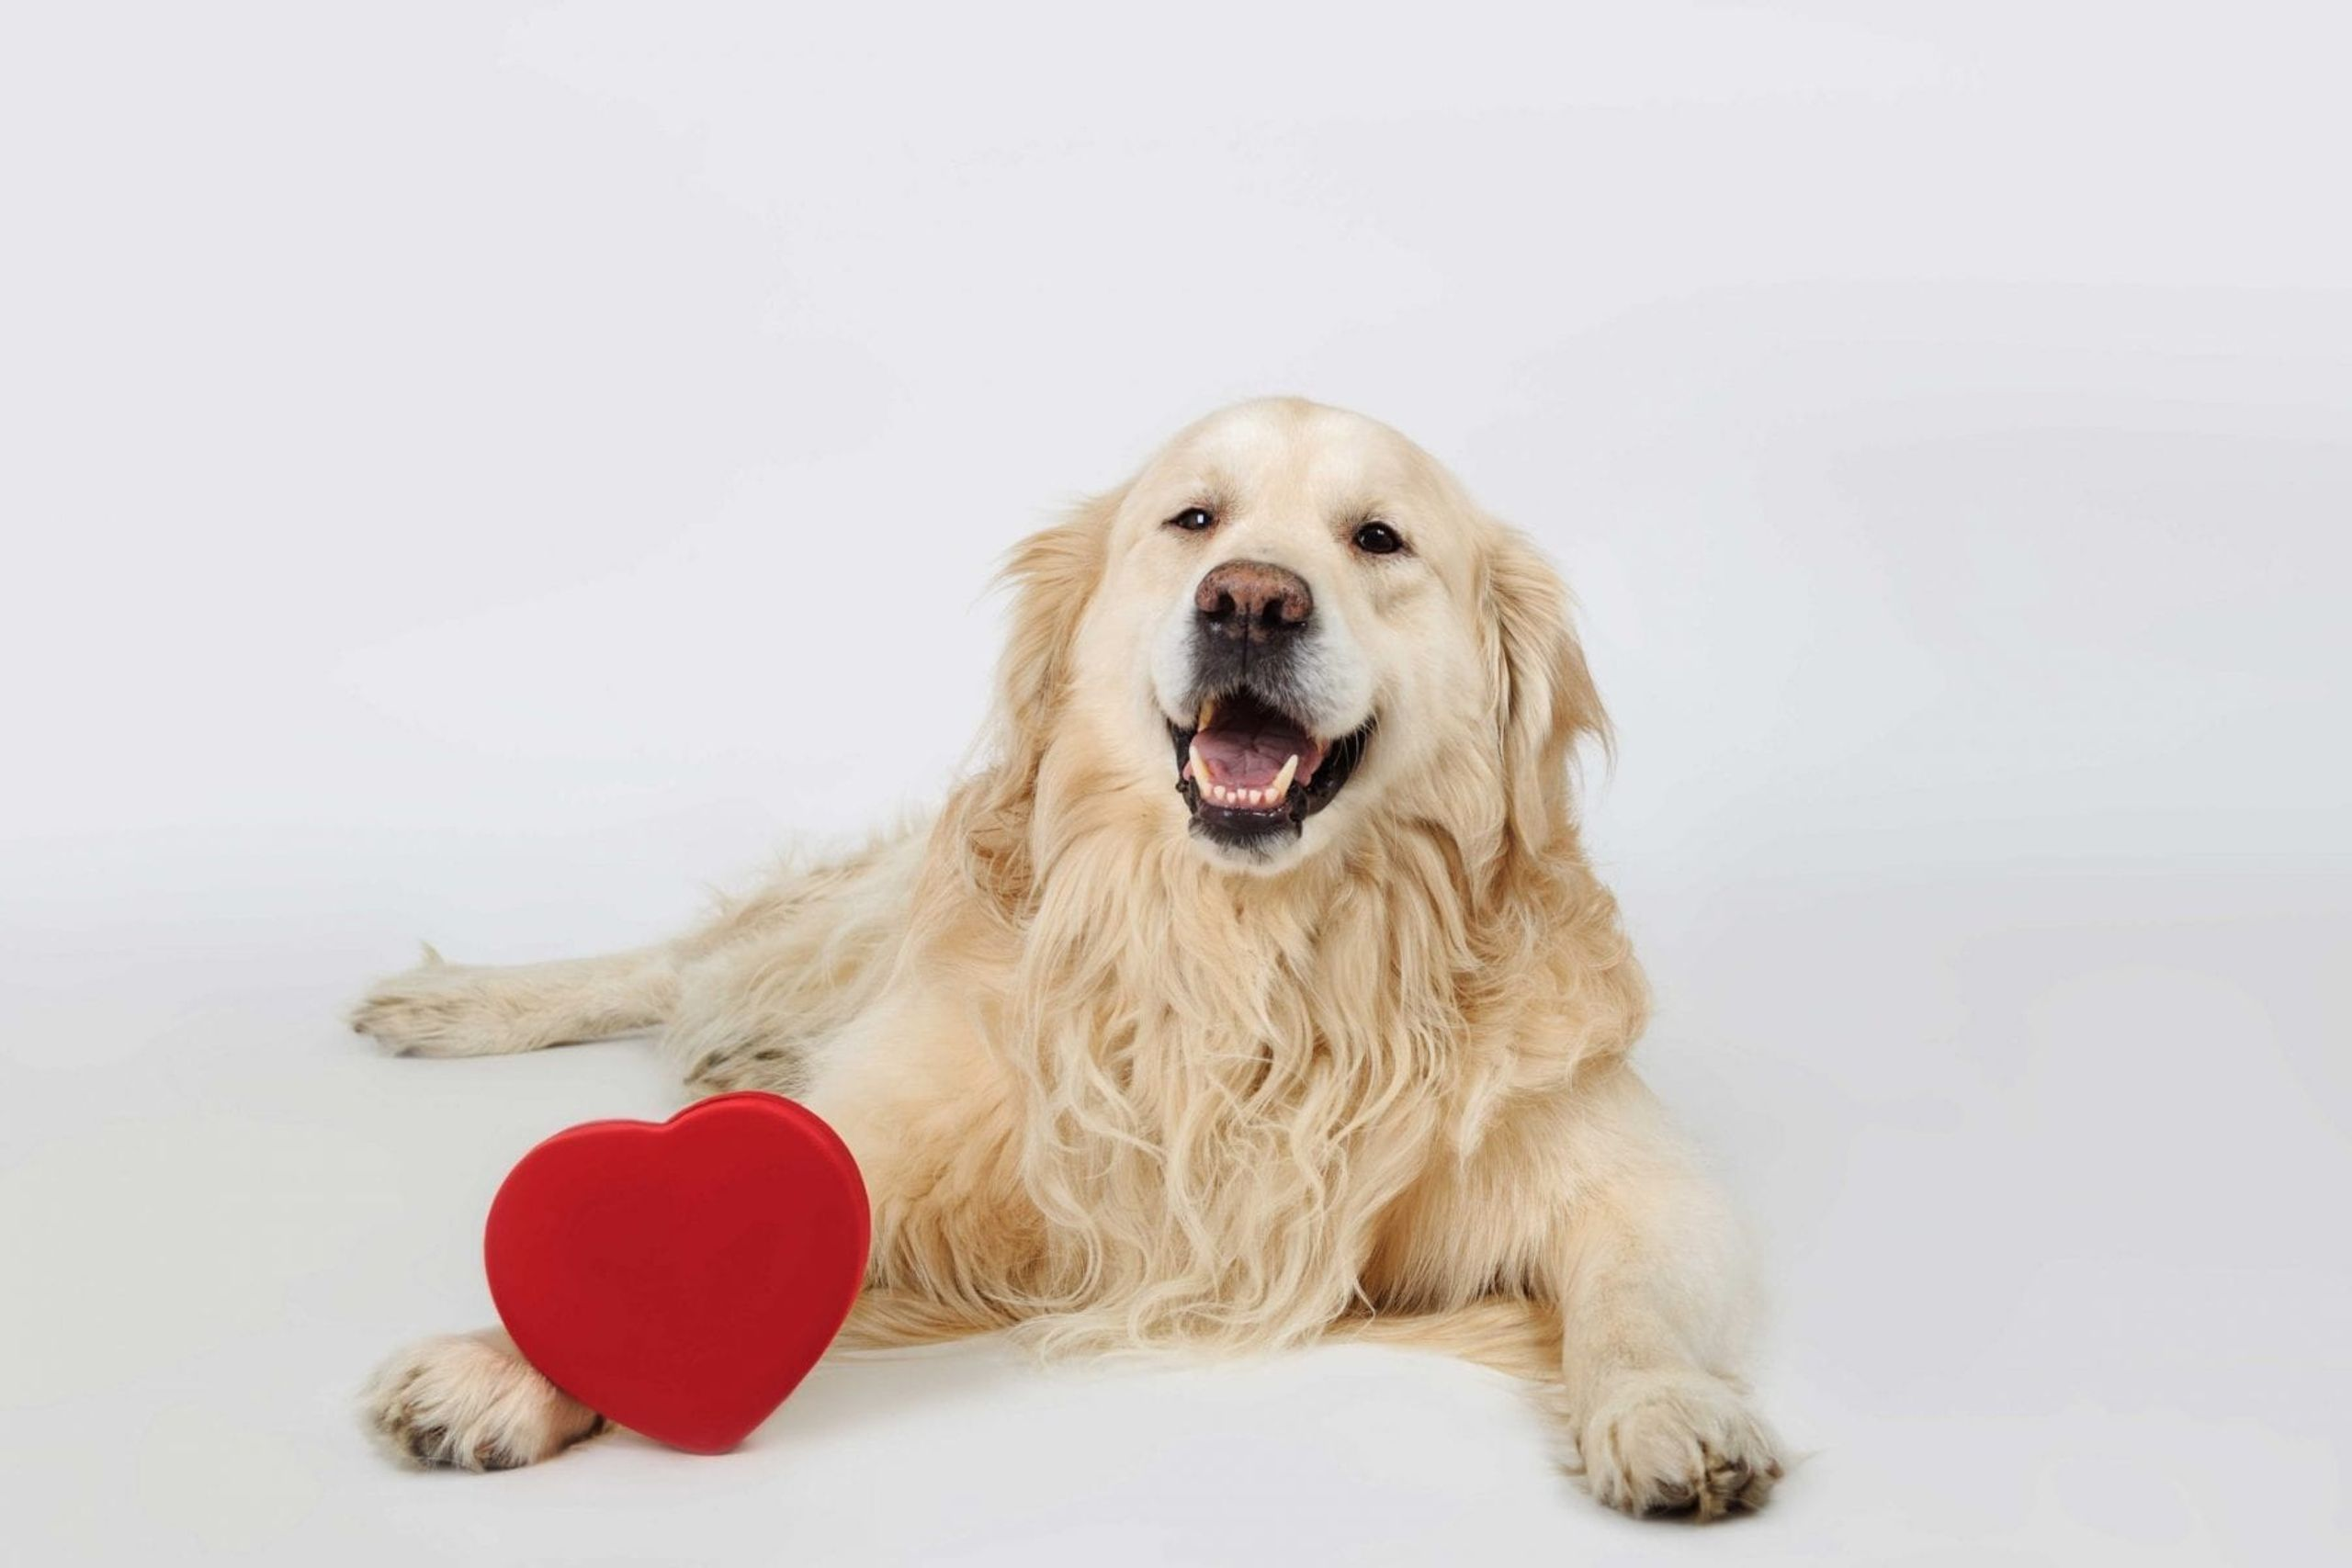 dog on Valentine's Day